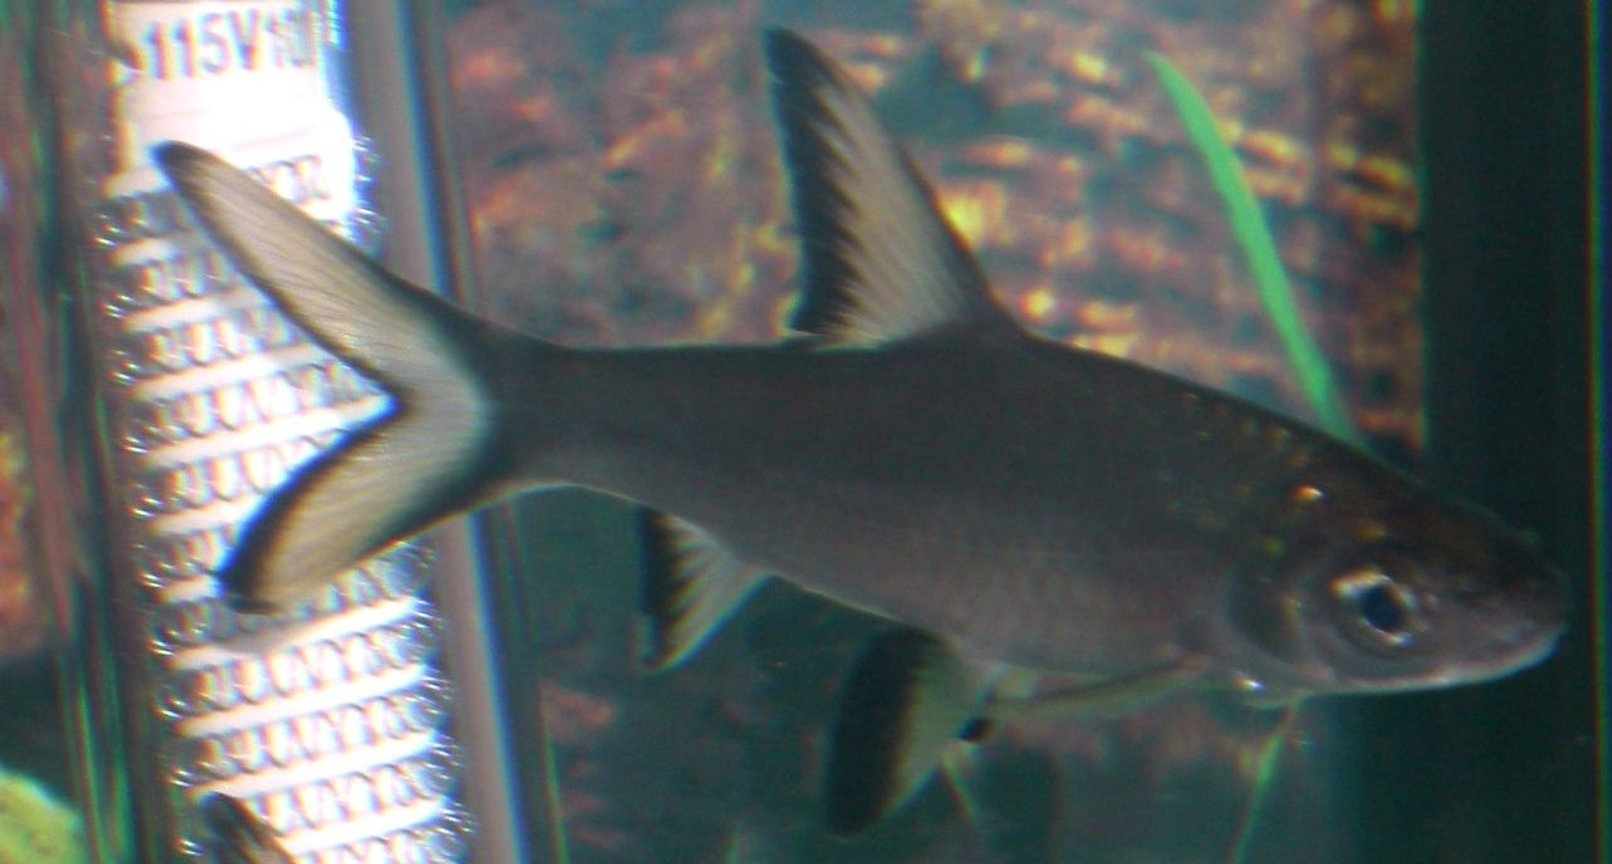 freshwater fish - balantiocheilus melanopterus - bala shark stocking in 25 gallons tank - Bala Shark